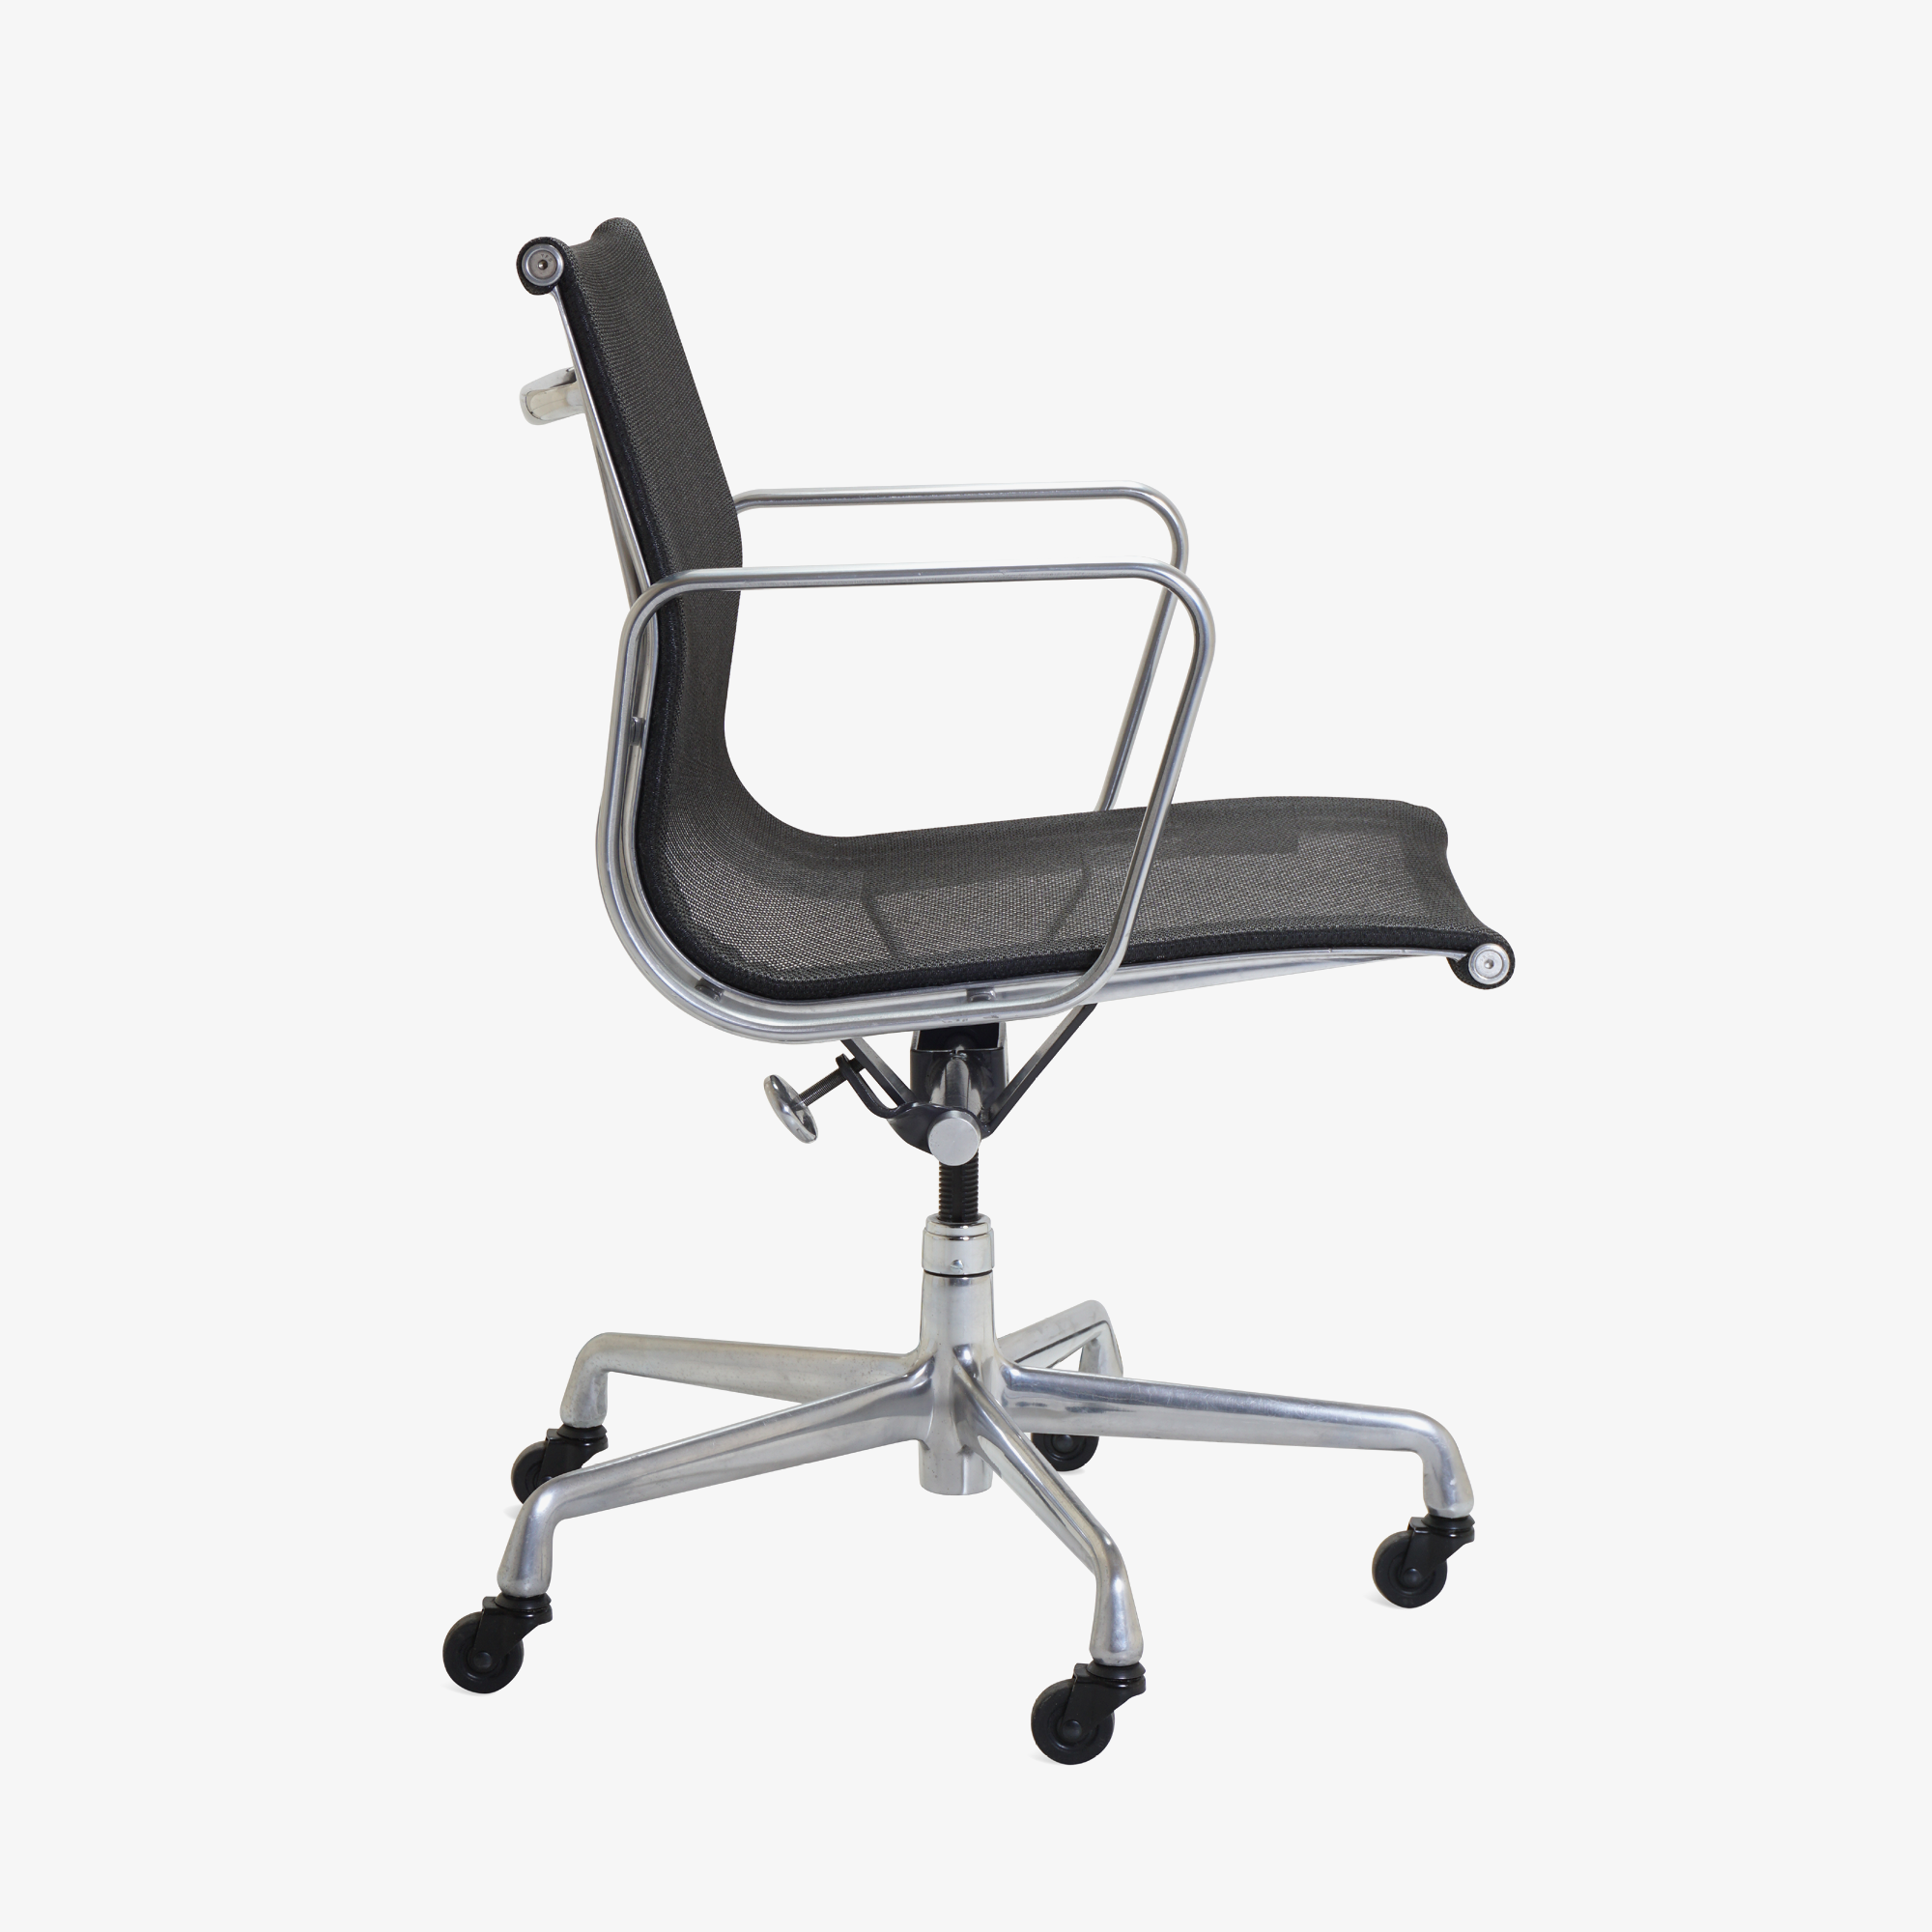 Aluminum Group Management Chair in Black Mesh by Charles & Ray Eames for Herman Miller4.png